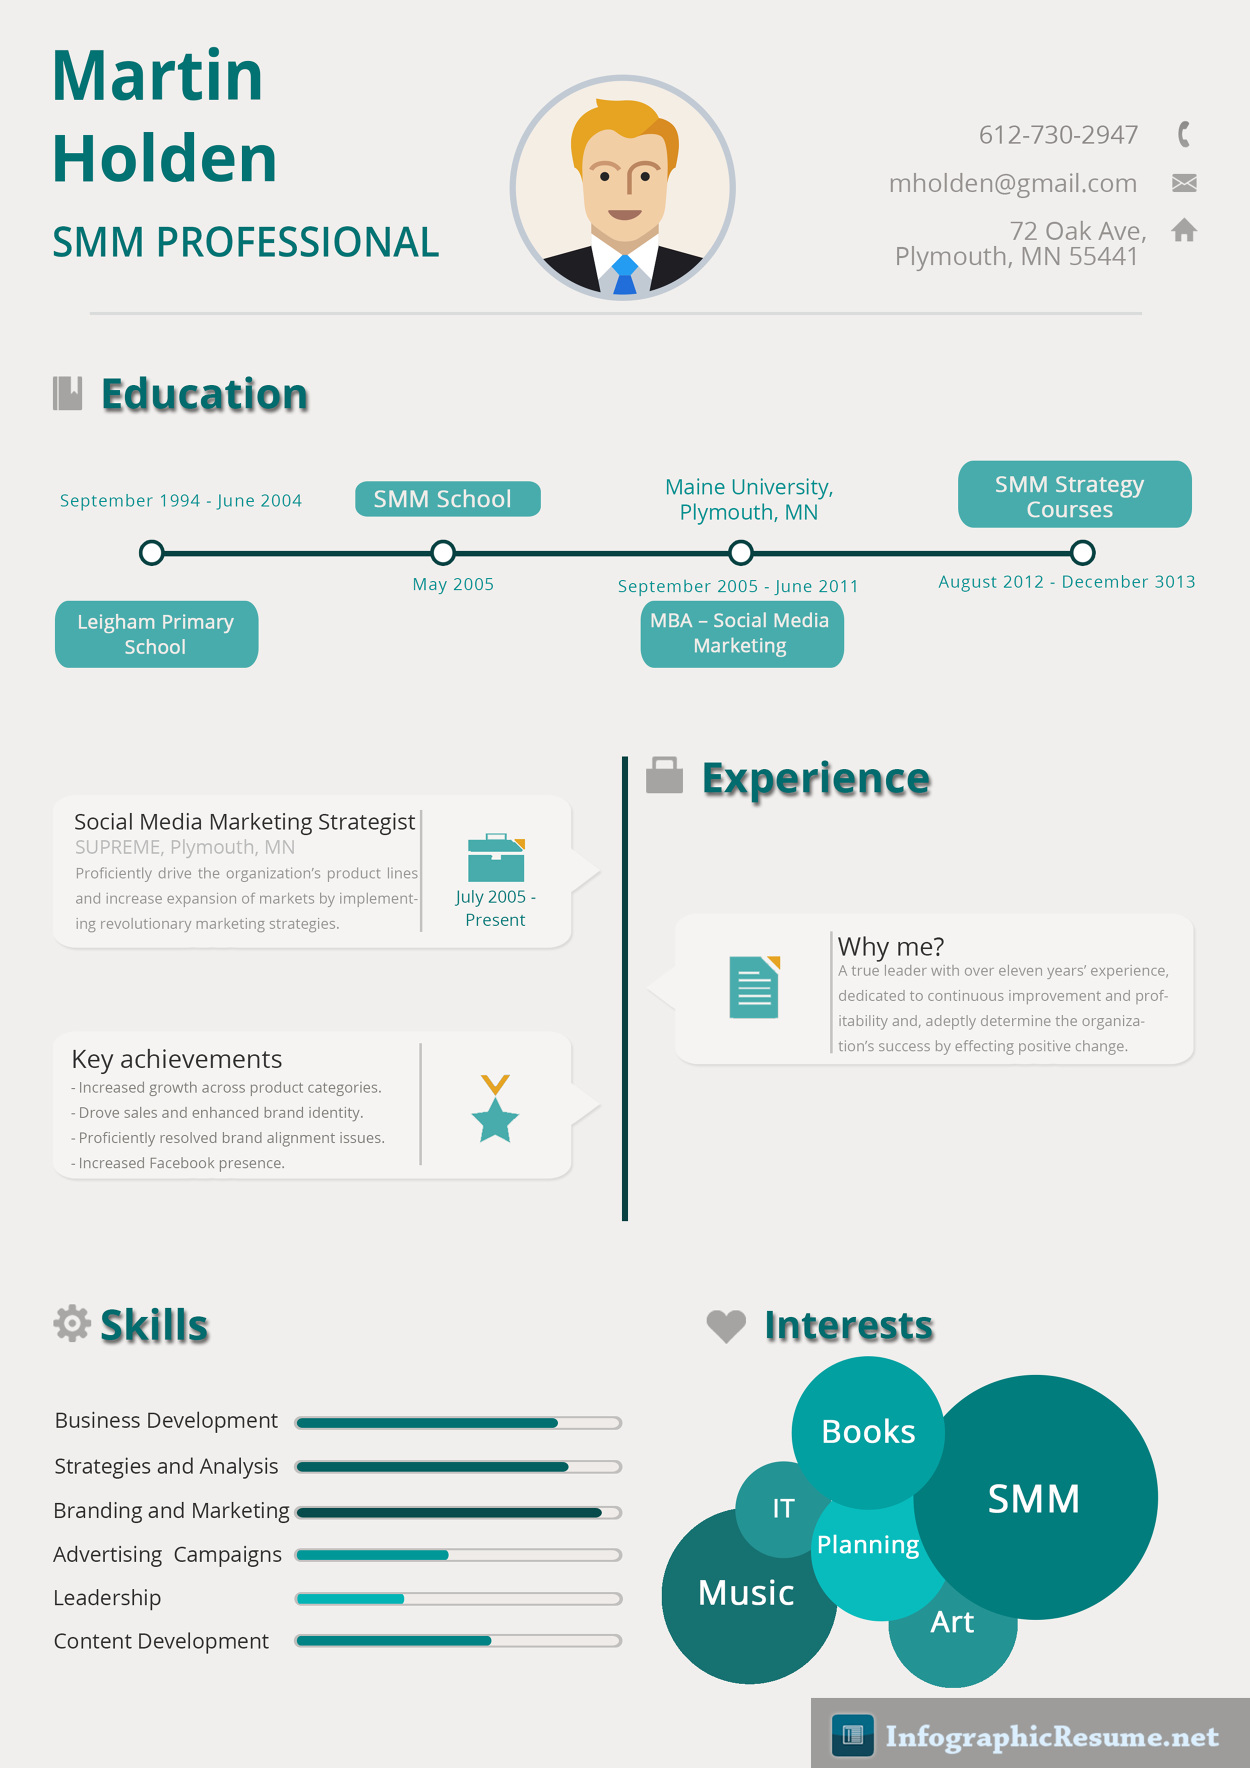 infographic resume samples infographicresumesamples this smm professional cv sample and much more resume samples you will here infographicresume net samples